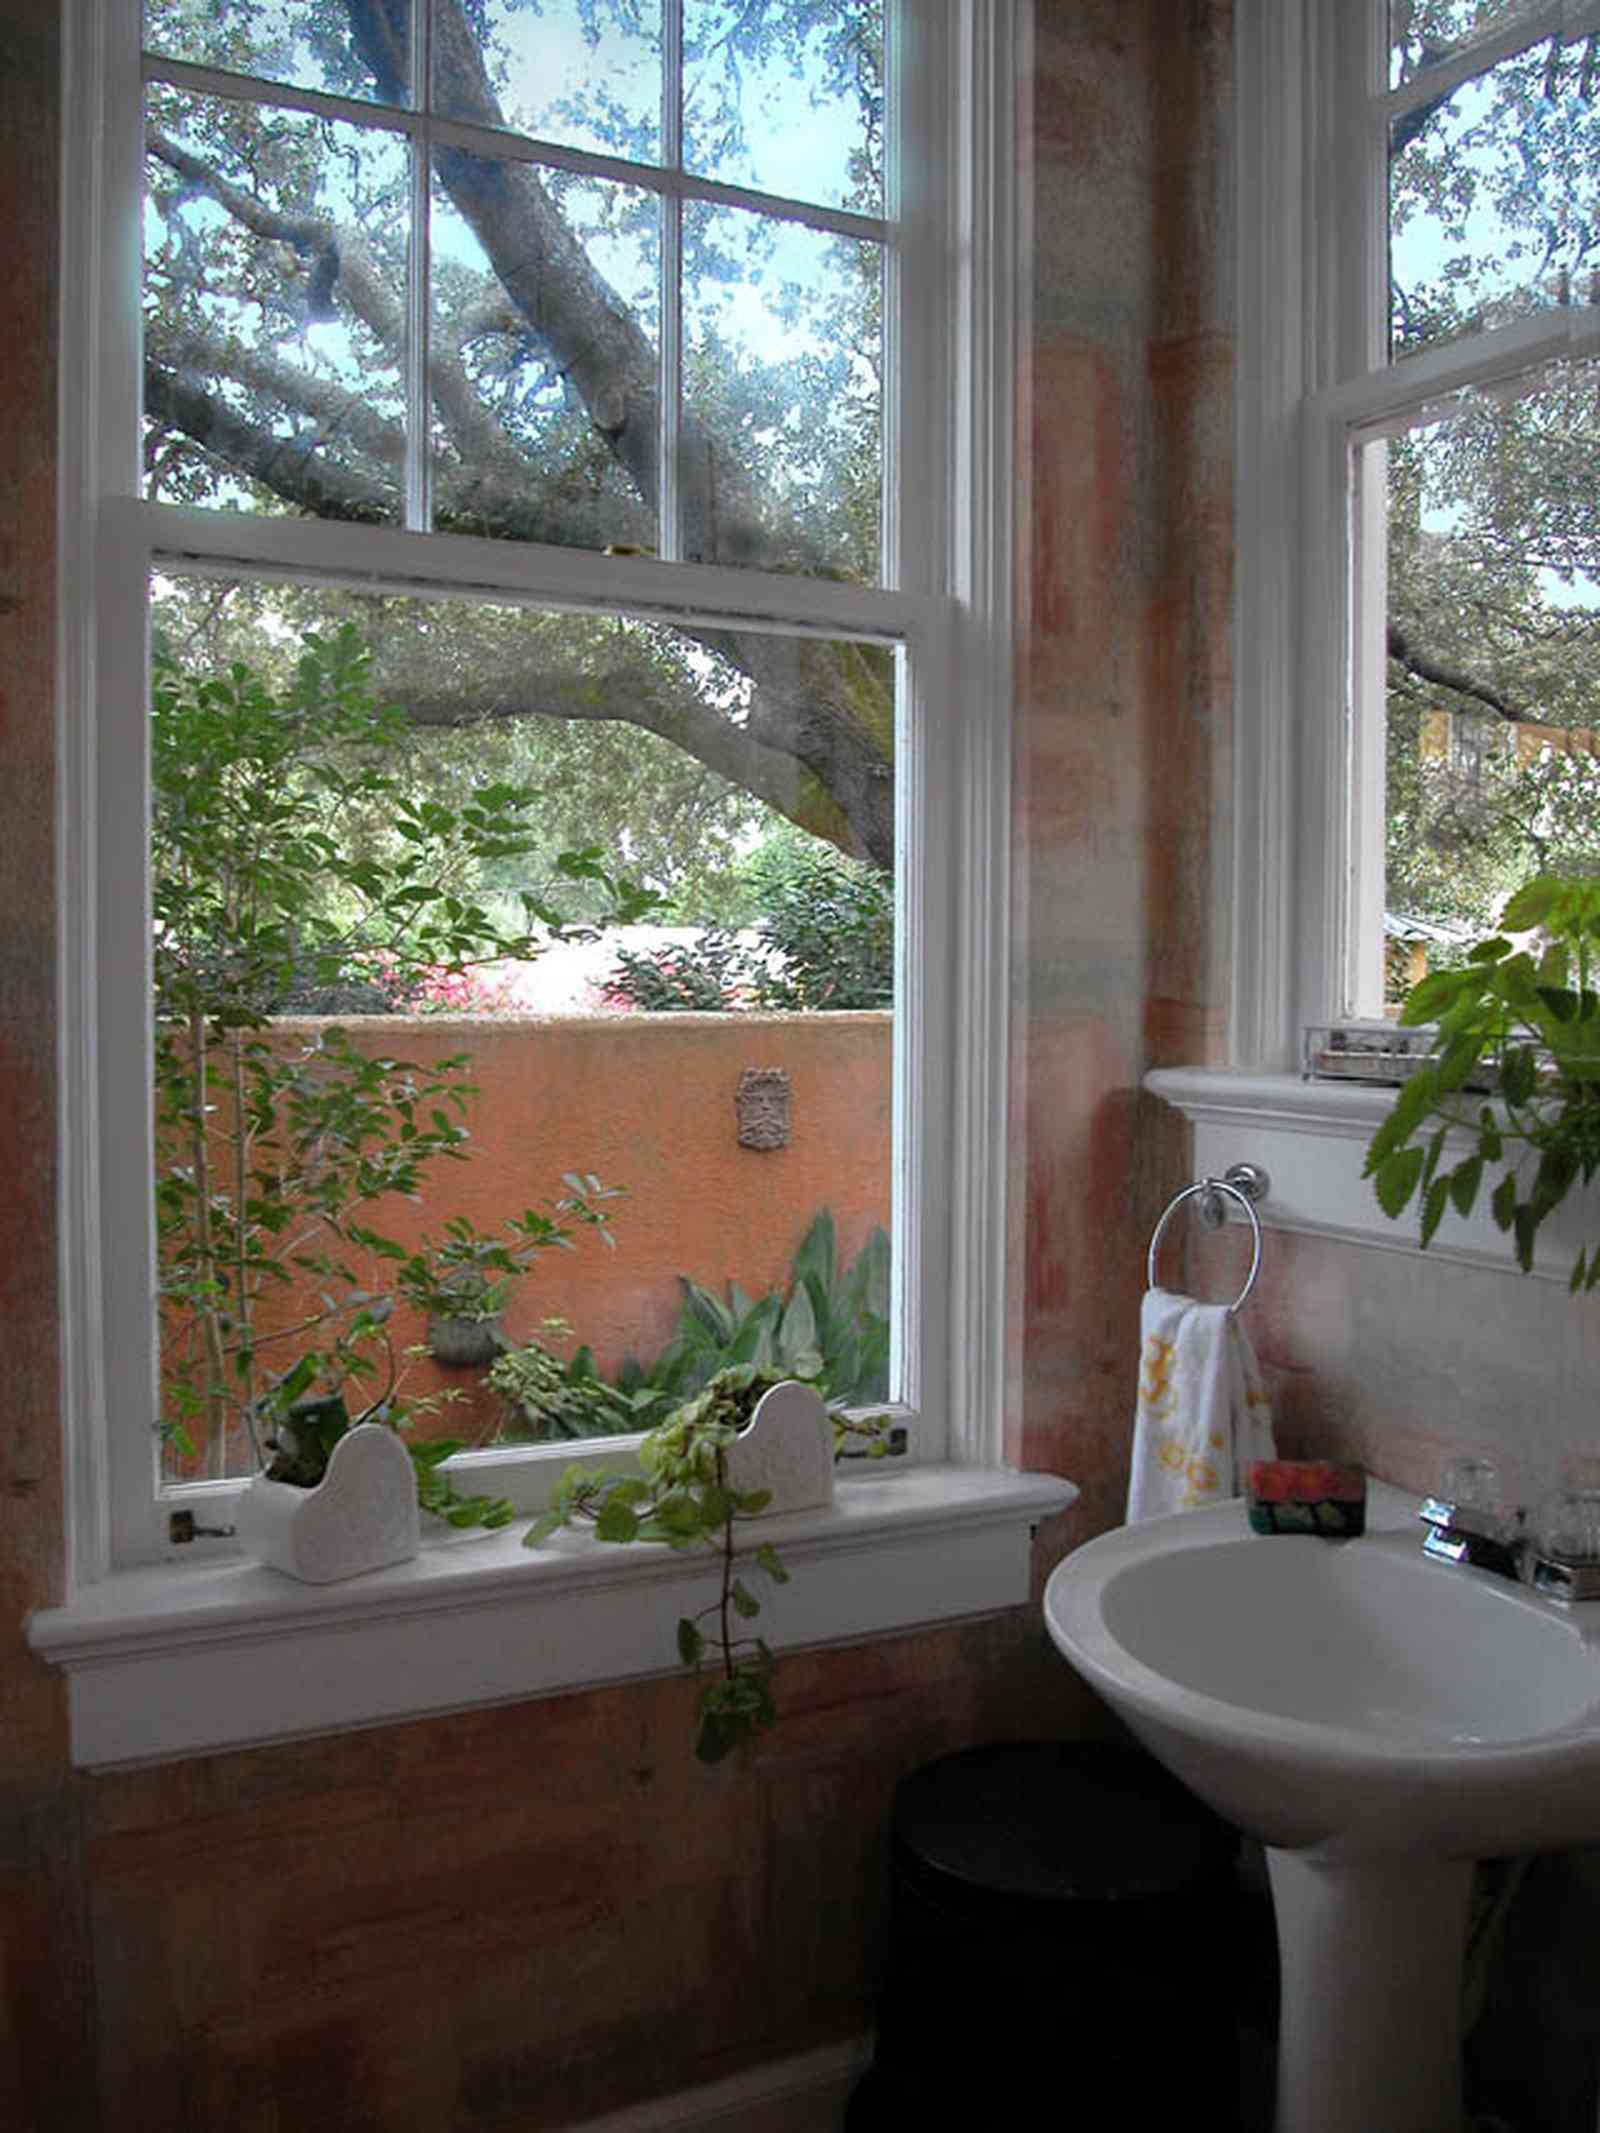 North-Hill:-123-West-Lloyd-Street_21.jpg:  bathroom, garden view, pedestal sink, oak tree, italienate style, spanish colonial revival